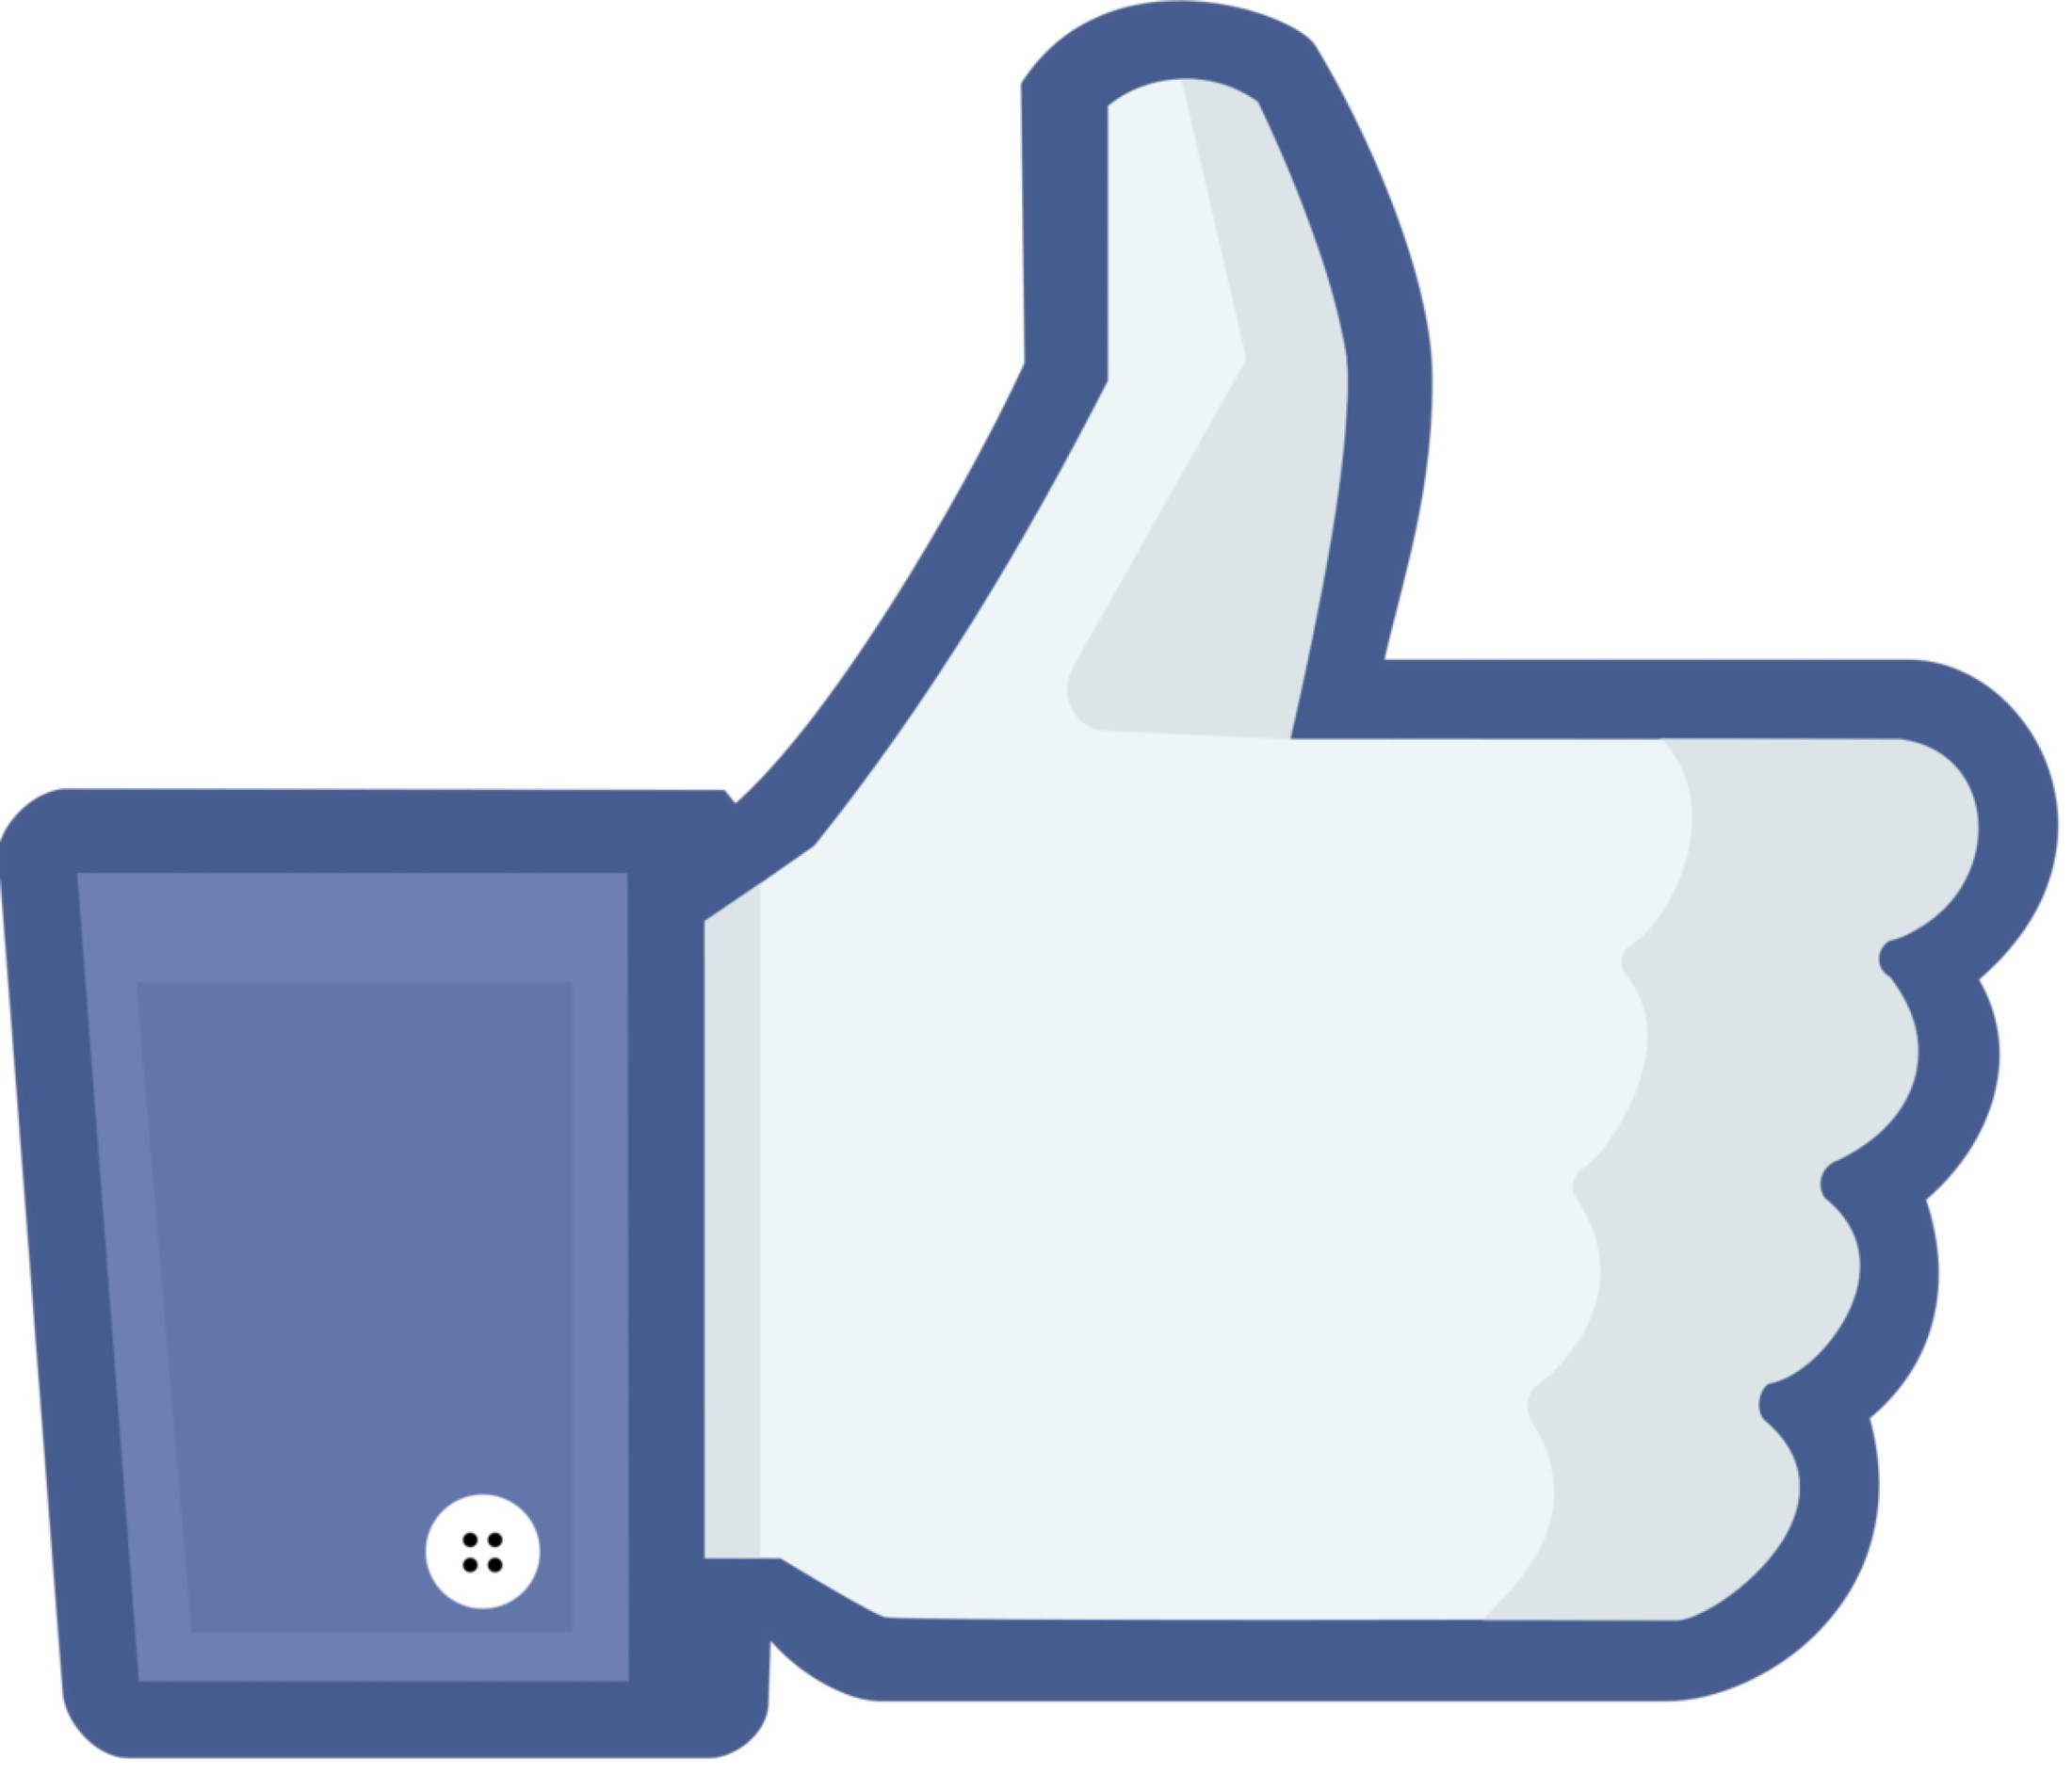 Facebook thumbs up